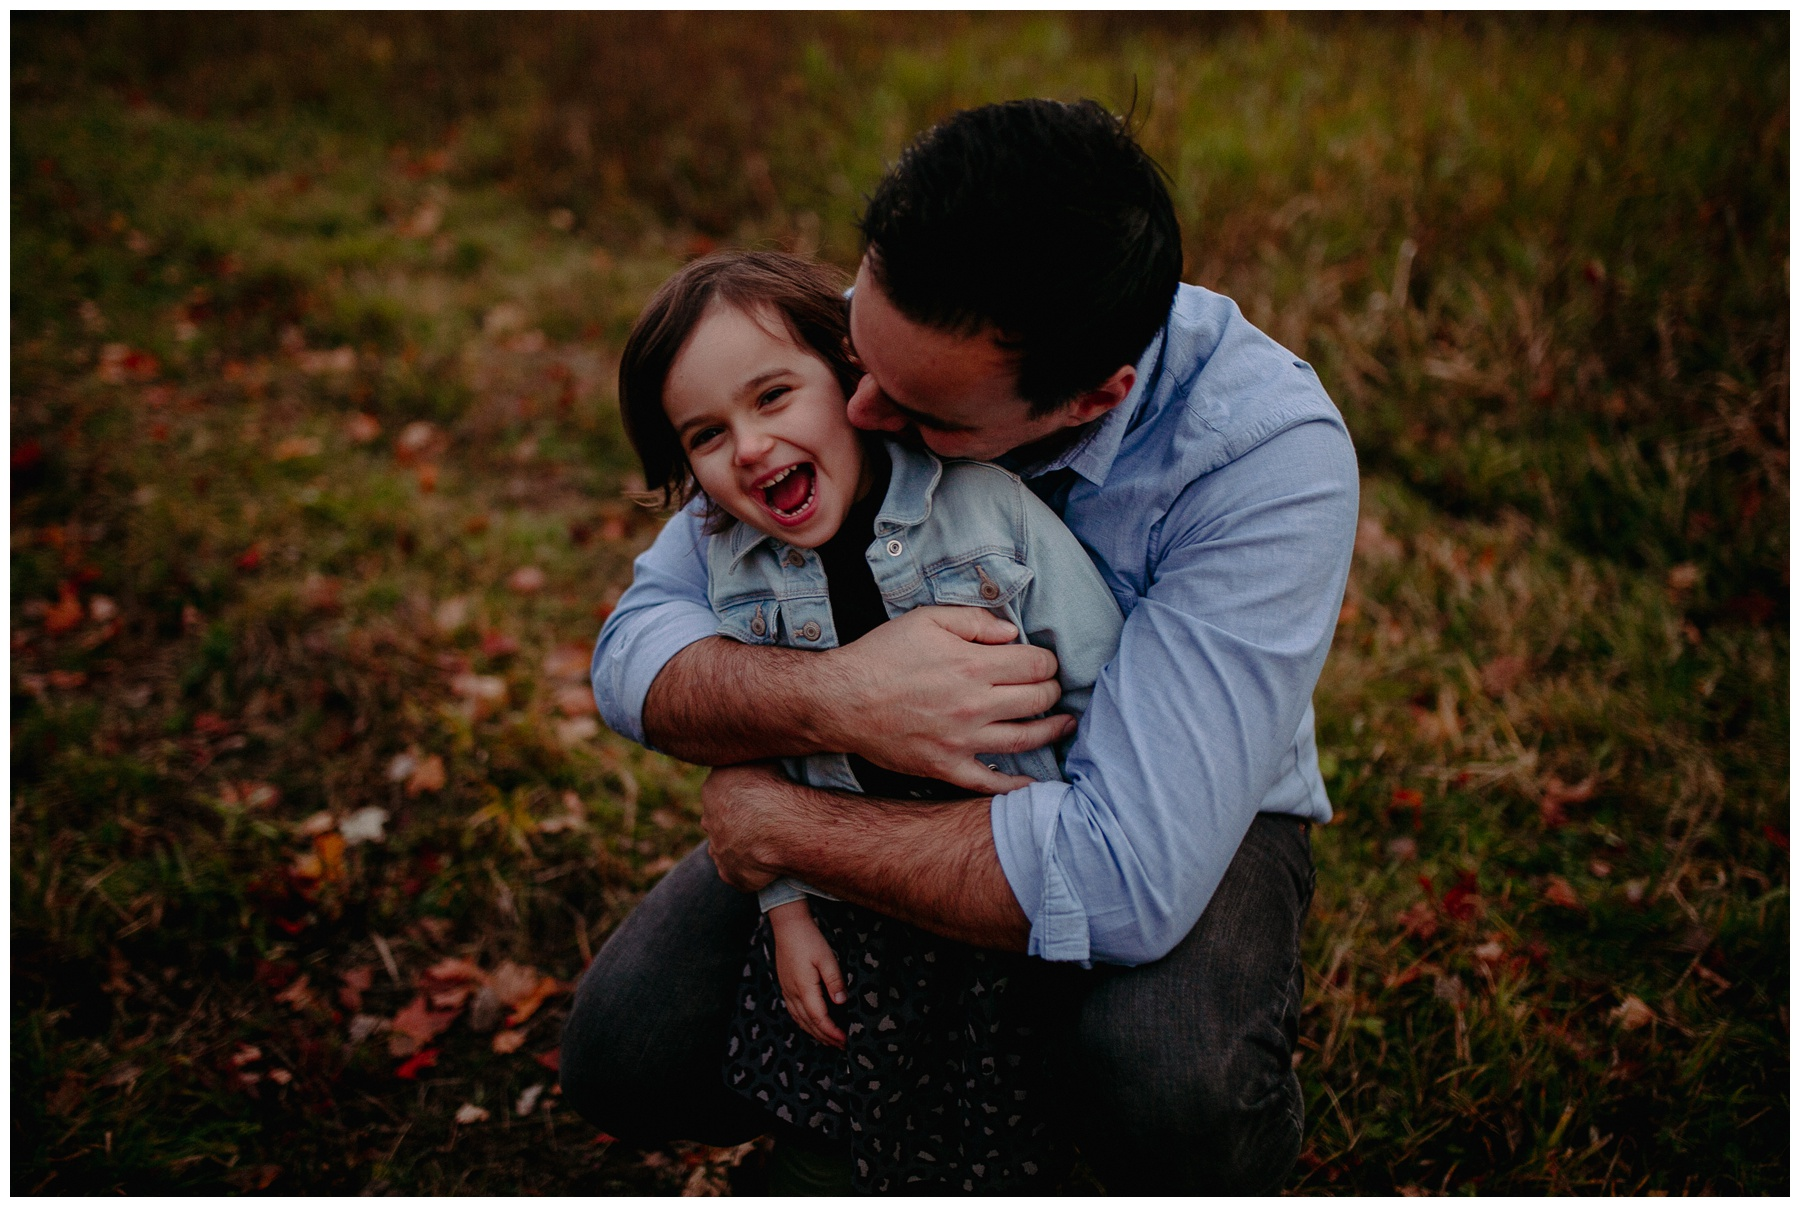 kerry ford photography - fall autumn family session perth053.jpg